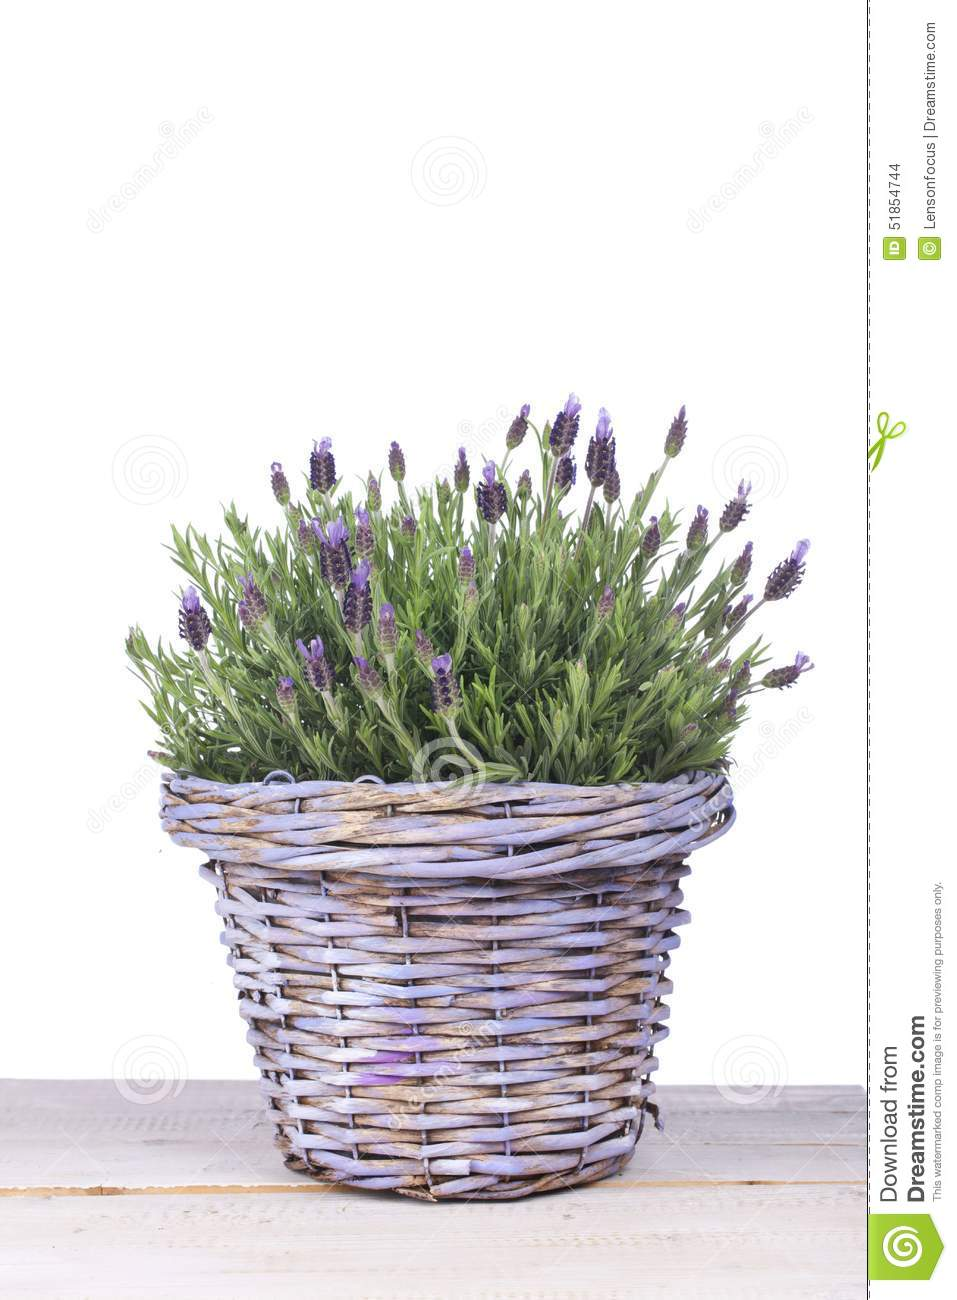 Common lavender plant in a lilac basket